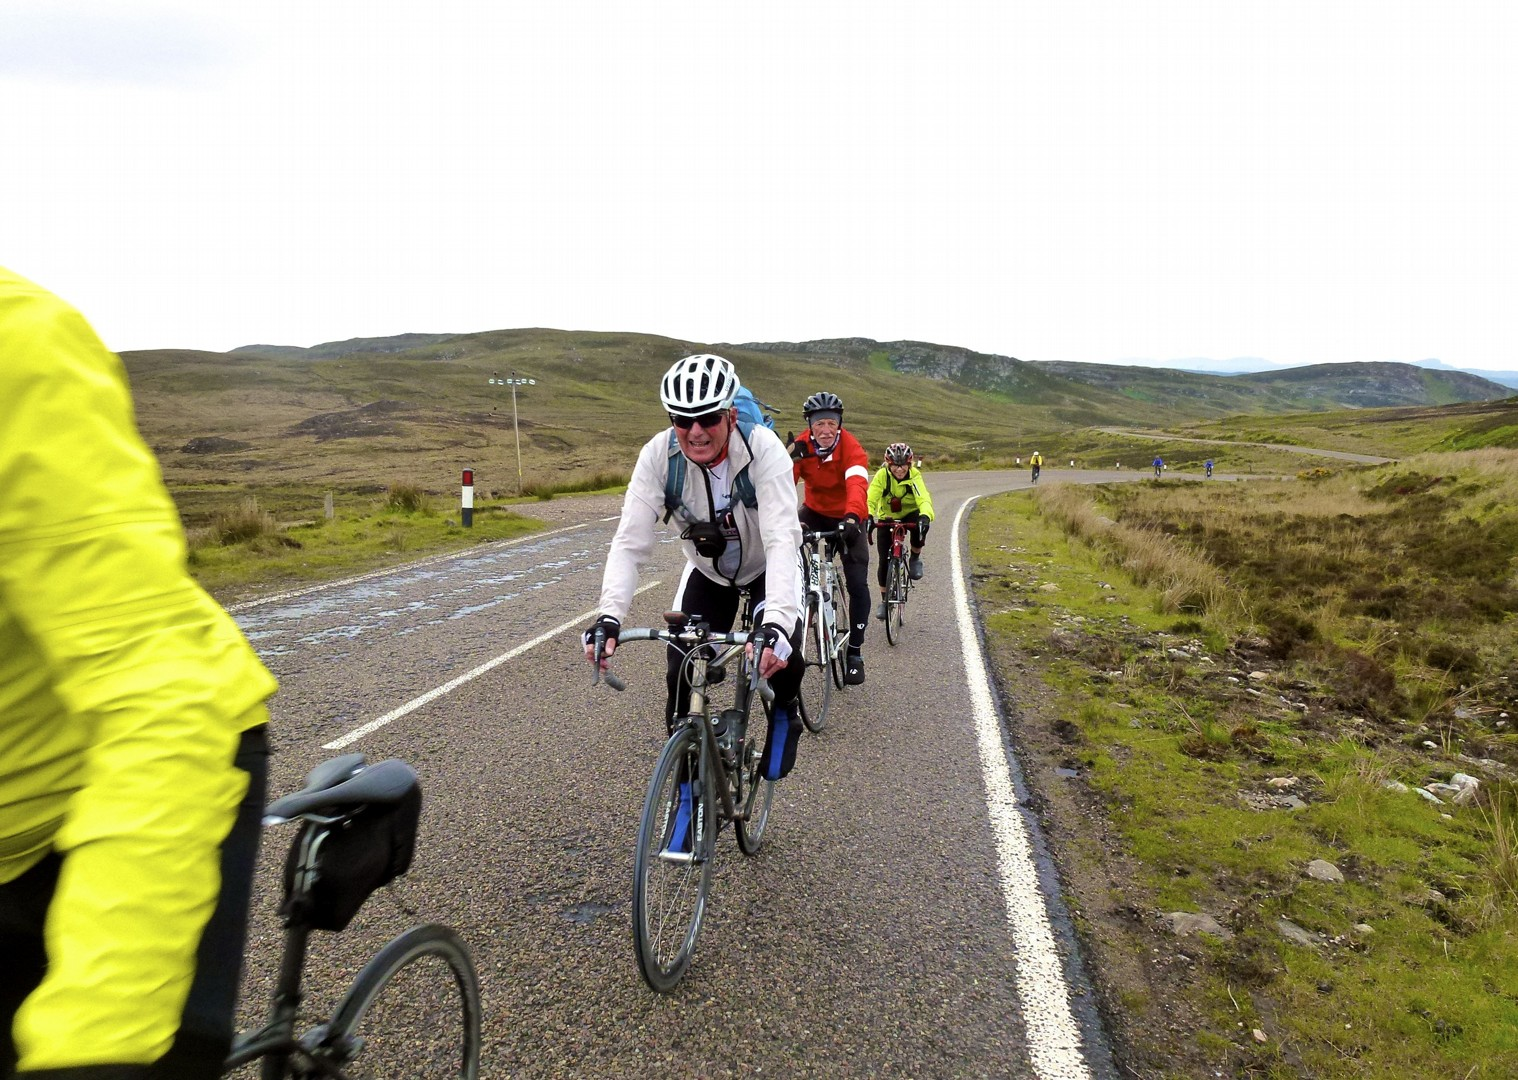 LEJOG9.jpg - UK - Land's End to John O'Groats Classic (16 days) - Guided Road Cycling Holiday - Road Cycling